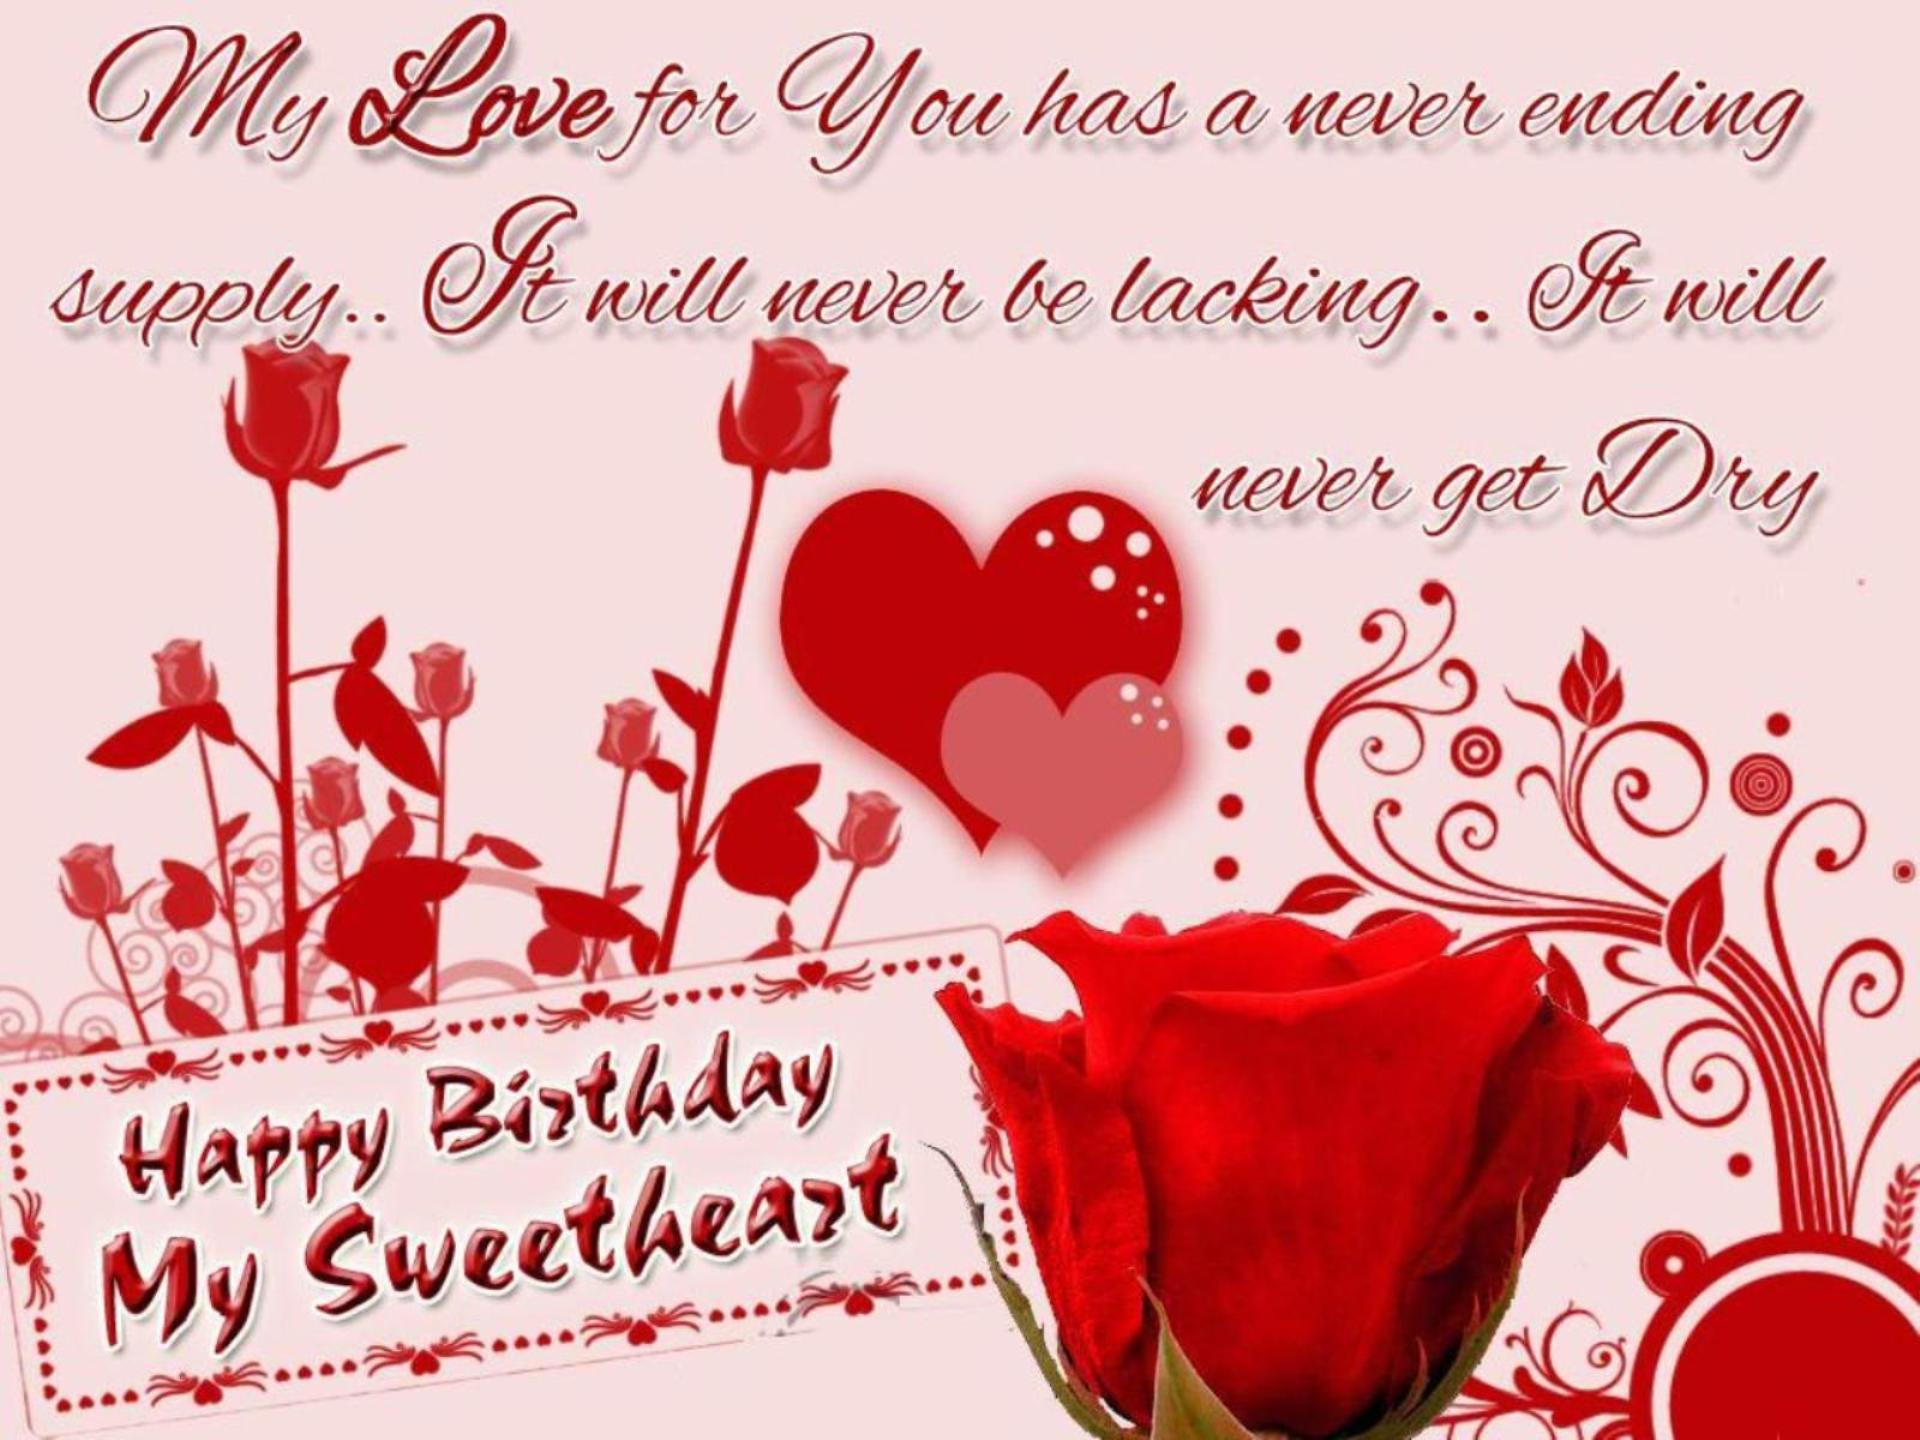 happy birthday love message to my girlfriend ; lovely-and-beautiful-birthday-wishes-to-make-your-girlfriend-happy-on-her-birthday-1